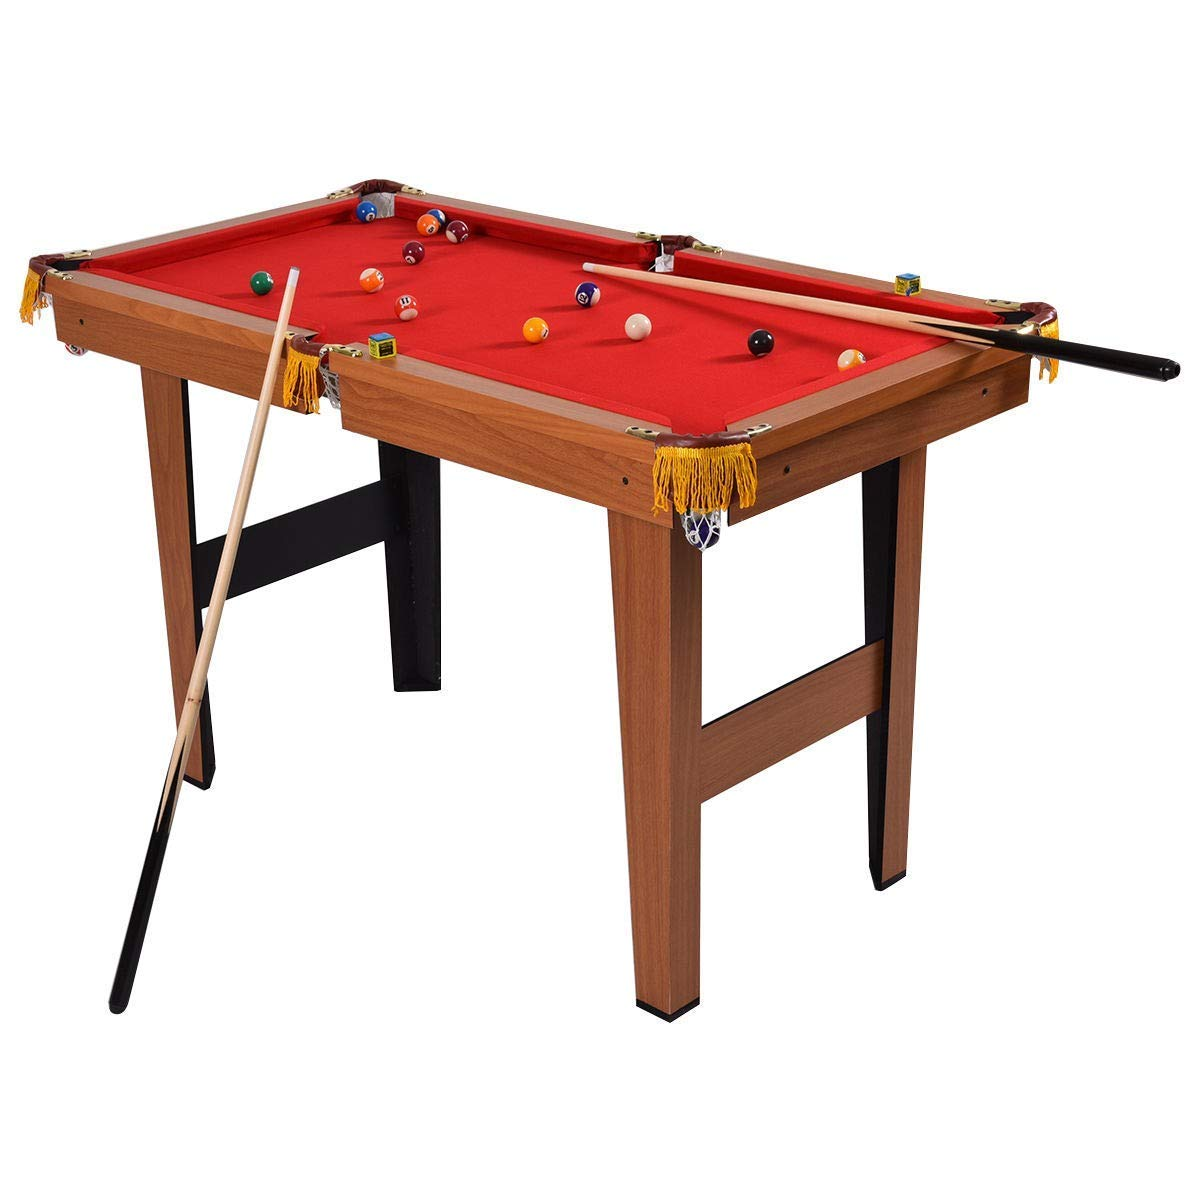 225 & Cheap Hard Top Pool Table Covers find Hard Top Pool Table ...